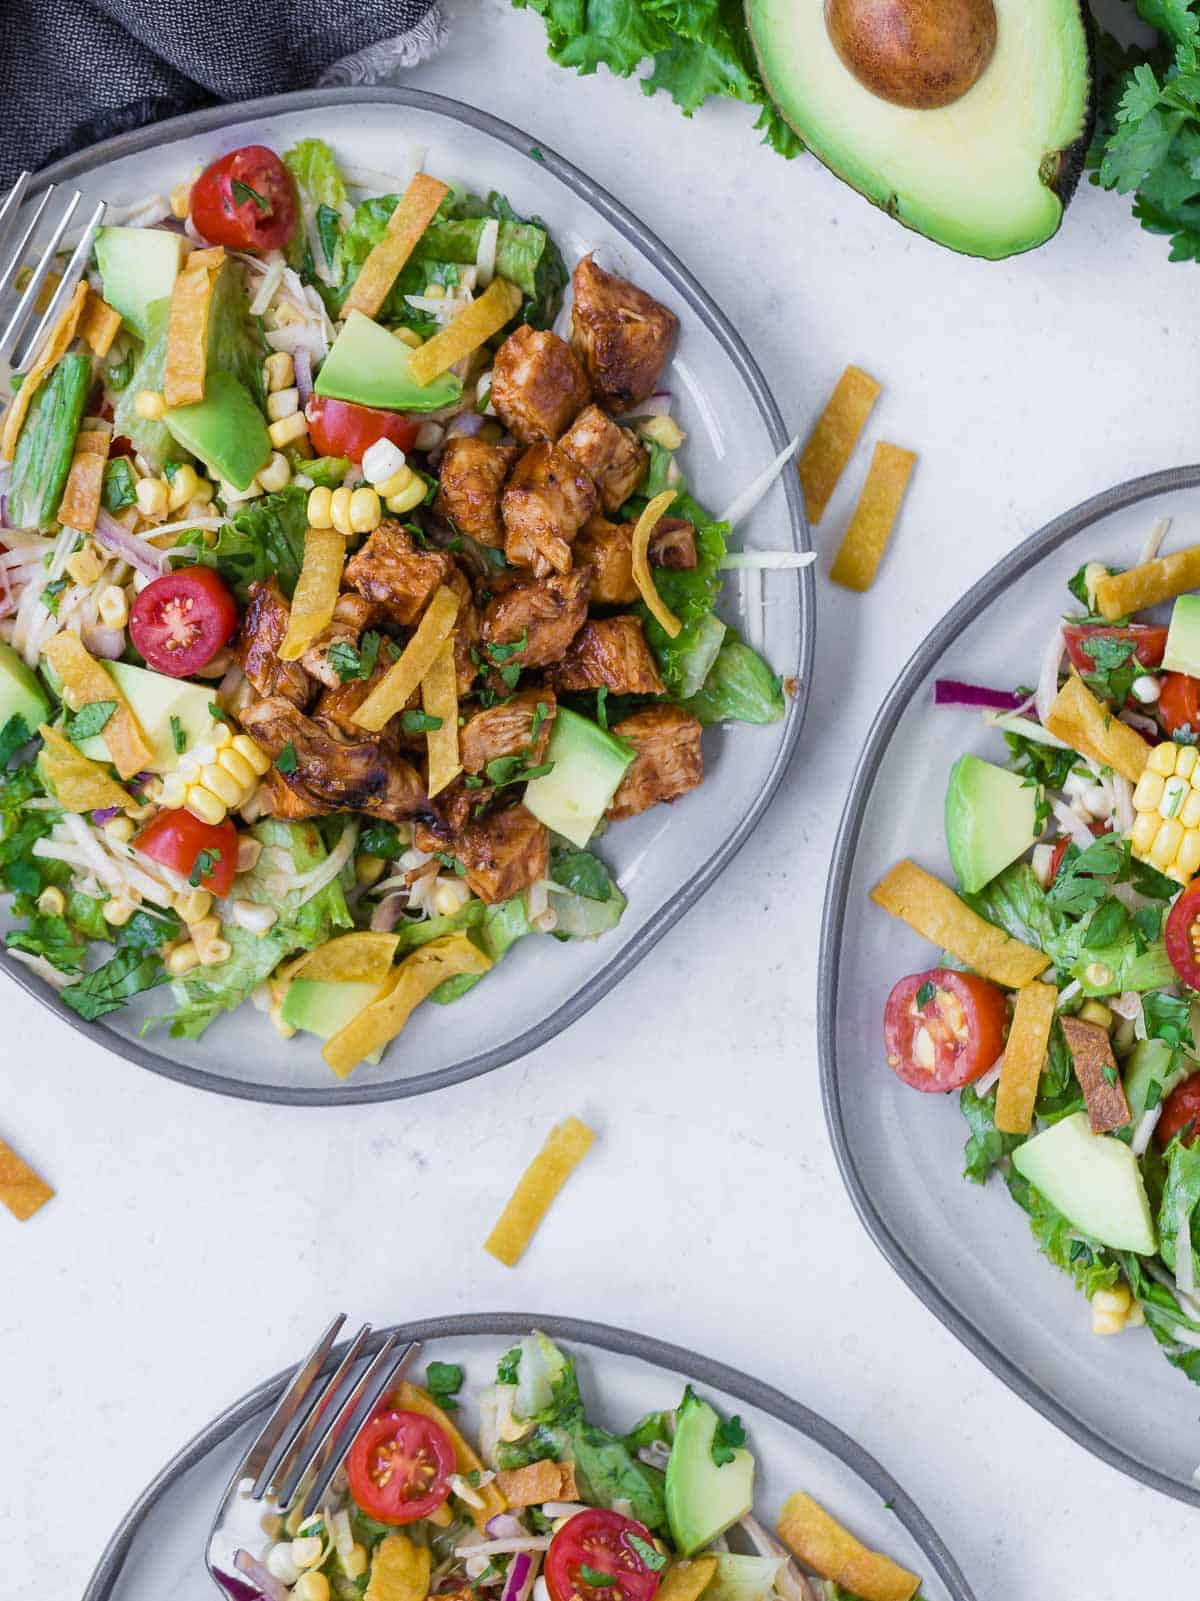 Overhead view of three plates of a colorful chopped salad on a grey plate. Salad includes bbq grilled chicken, lettuce, onion, tomato, crispy tortilla strips, avocado, corn and more!